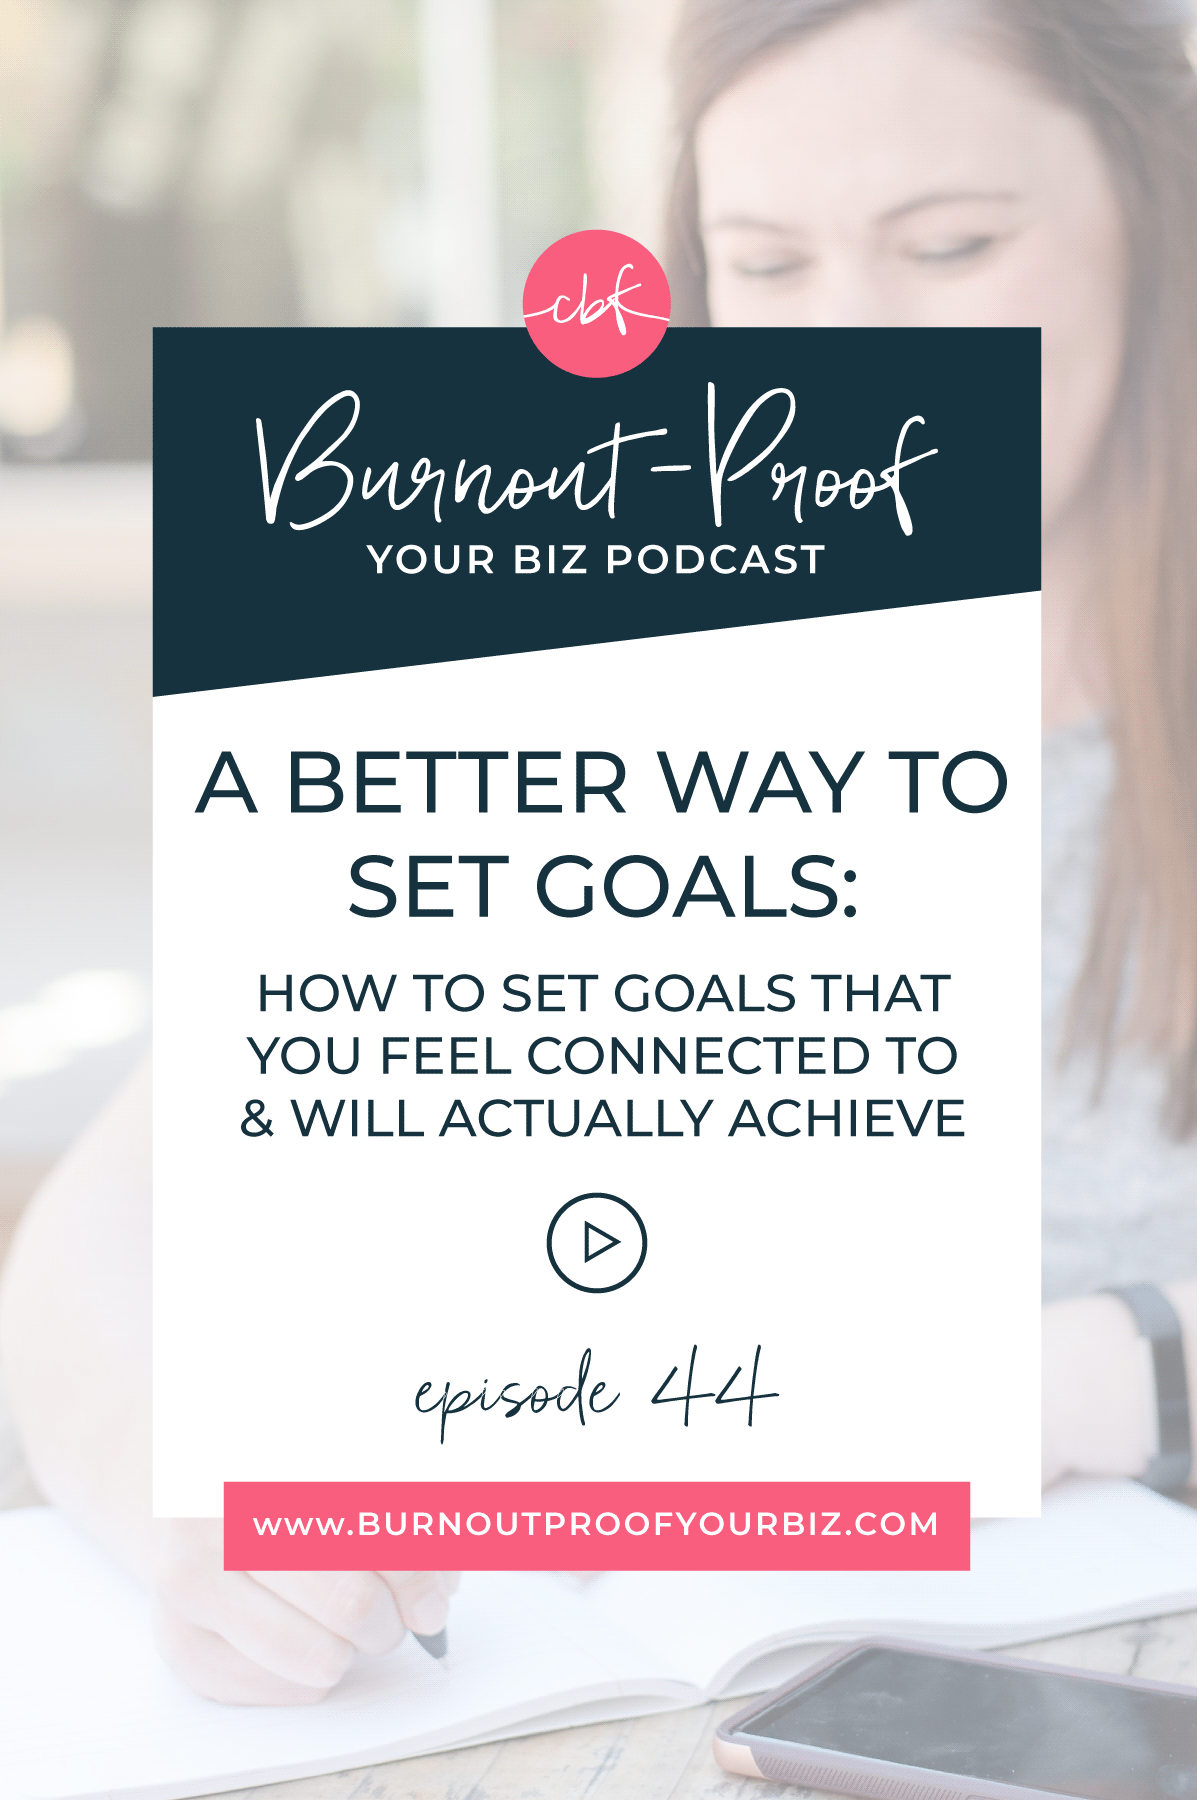 Burnout-Proof Your Biz Podcast with Chelsea B Foster | Episode 044 - A Better Way to Set Goals: How to Write Goals That You Feel Connected to and Will Actually Achieve | Learn how to run your biz and live your dream life on your own terms without the fear of burnout.  Workflow & Productivity Specialist | Overwhelmed | Stressed-out | Setting Goals | Writing Goals | Goal-setting for Creative Businesses | Boundaries | Journaling Activity | Mission & Vision Statement | Creative Entrepreneur | Productivity | Dream life | Freedom lifestyle | Having a business that supports your dream life